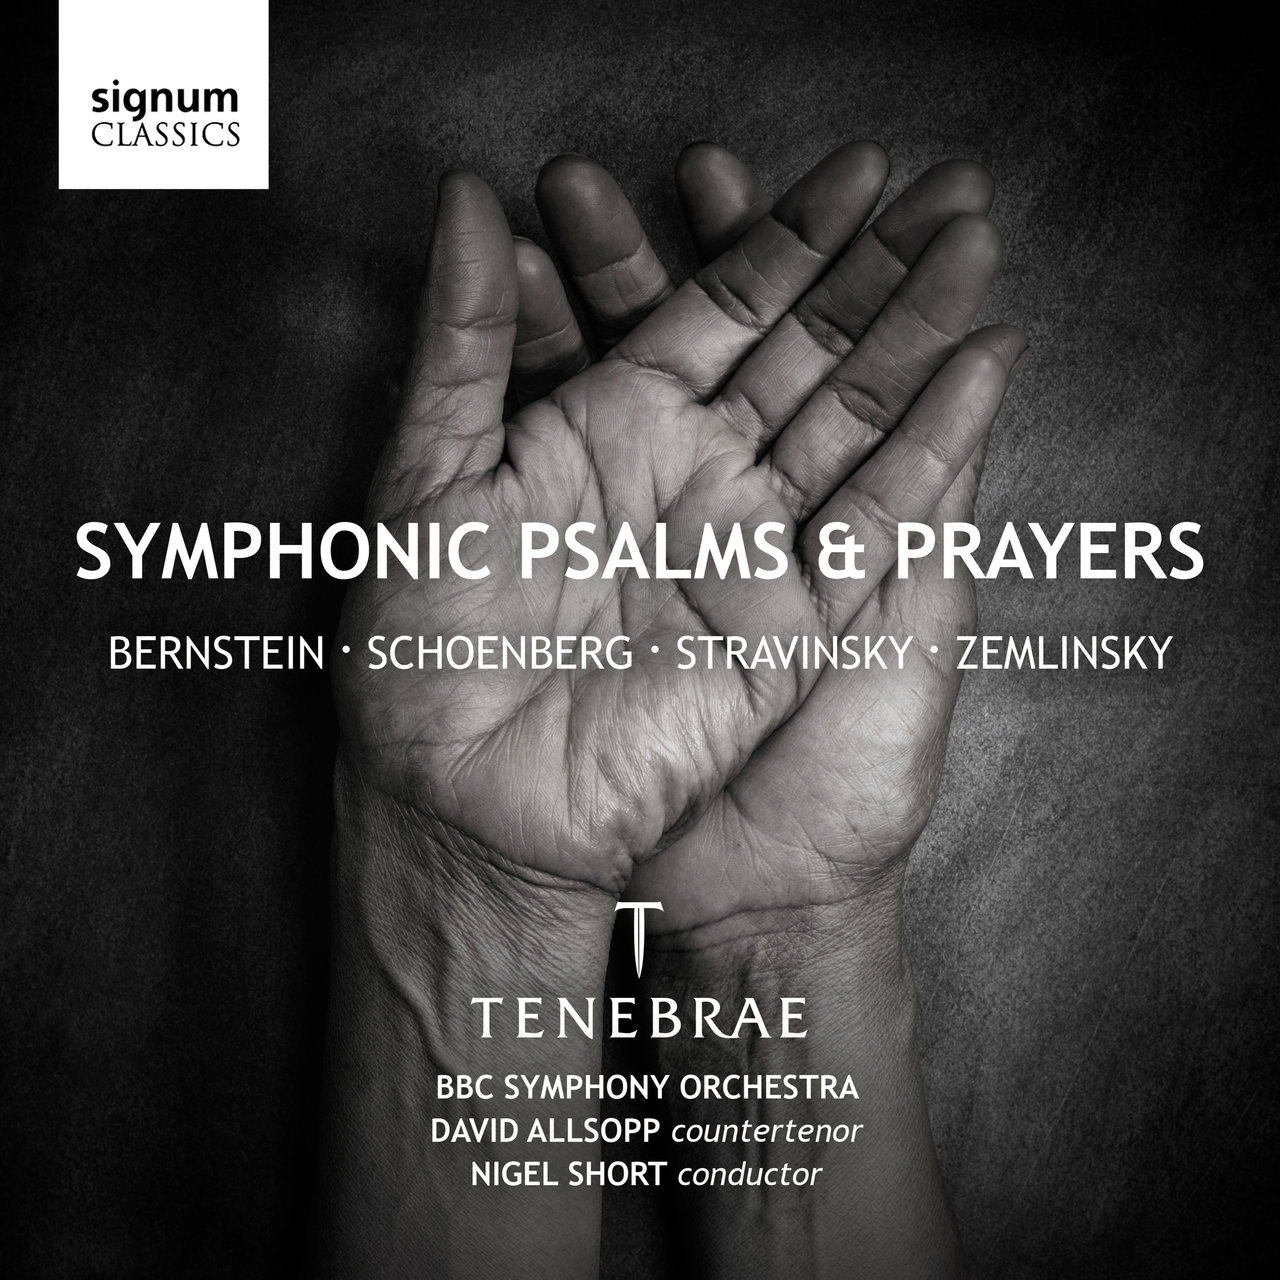 Symphonic Psalms & Prayers